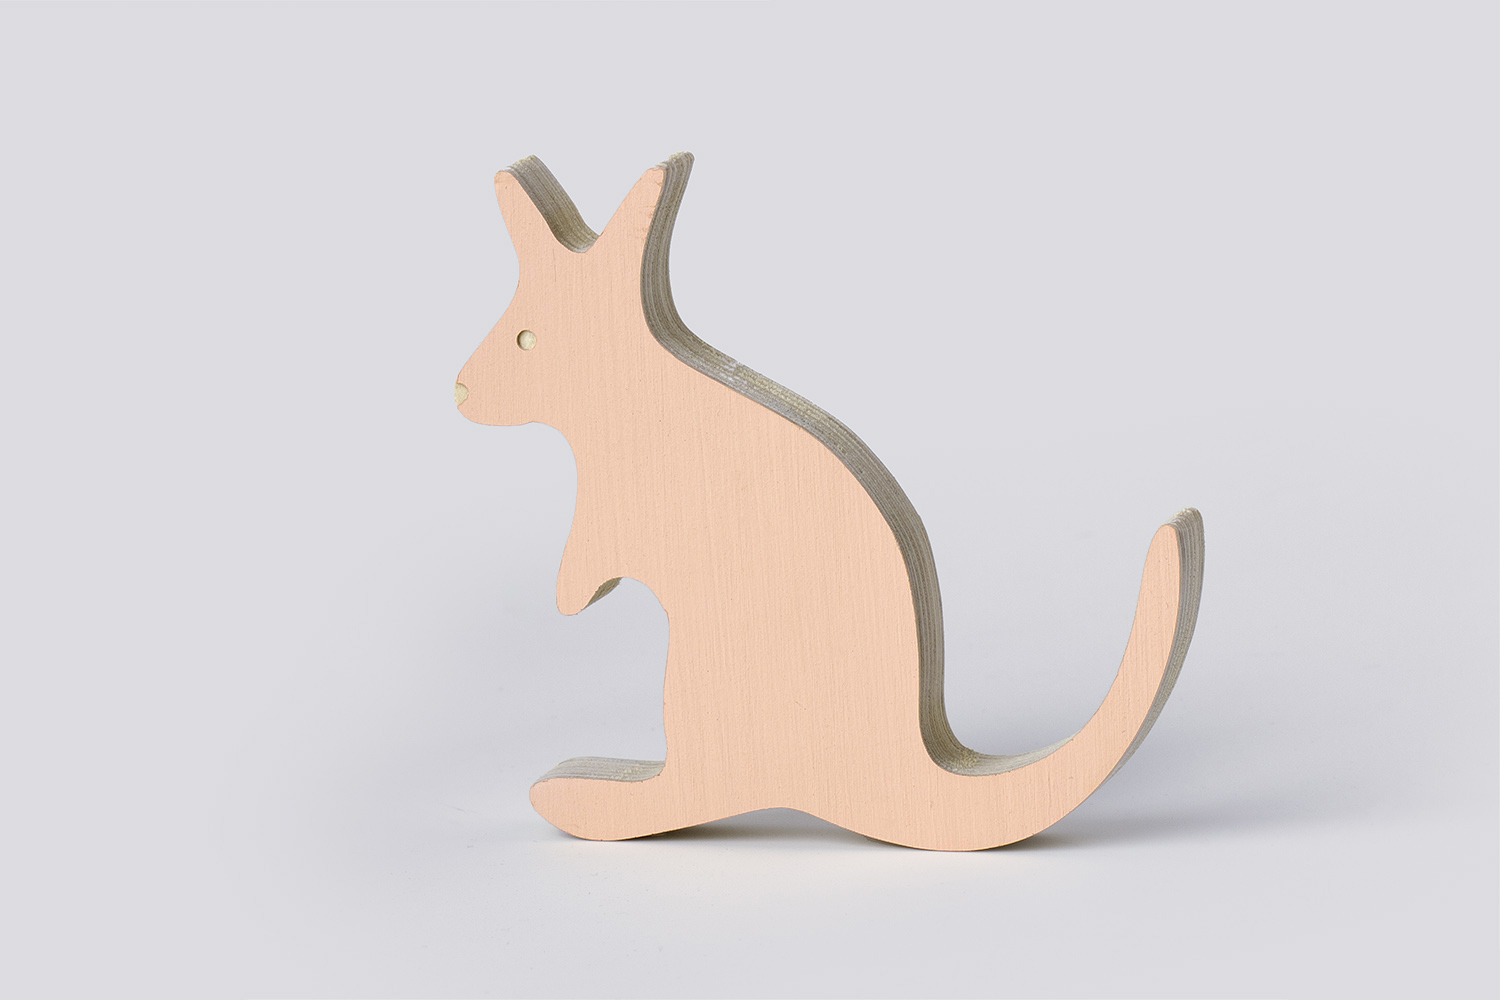 Wooden-Kangaroo-Decor